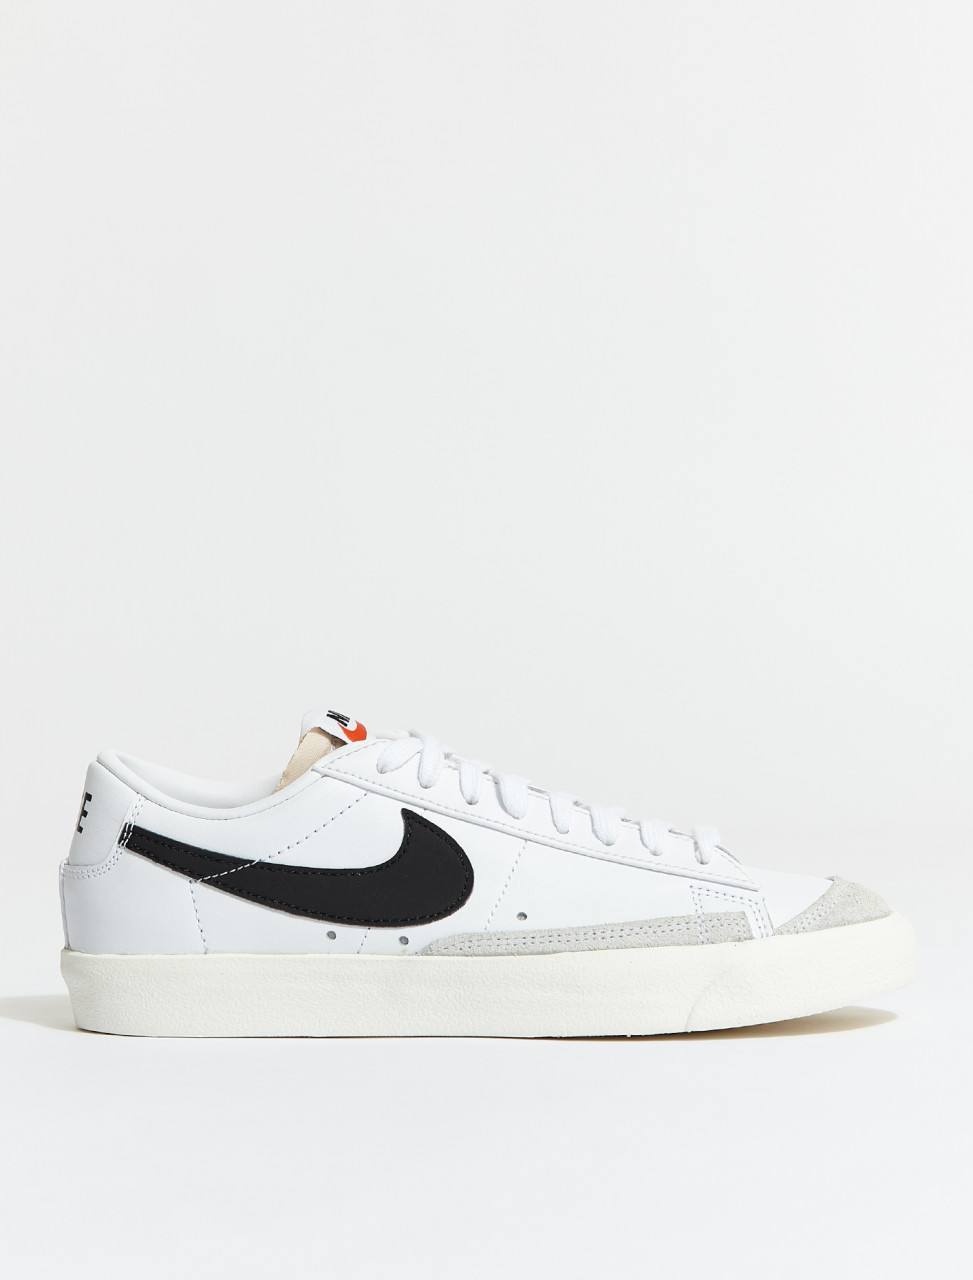 DA6364-101 NIKE BLAZER LOW WHITE BLACK